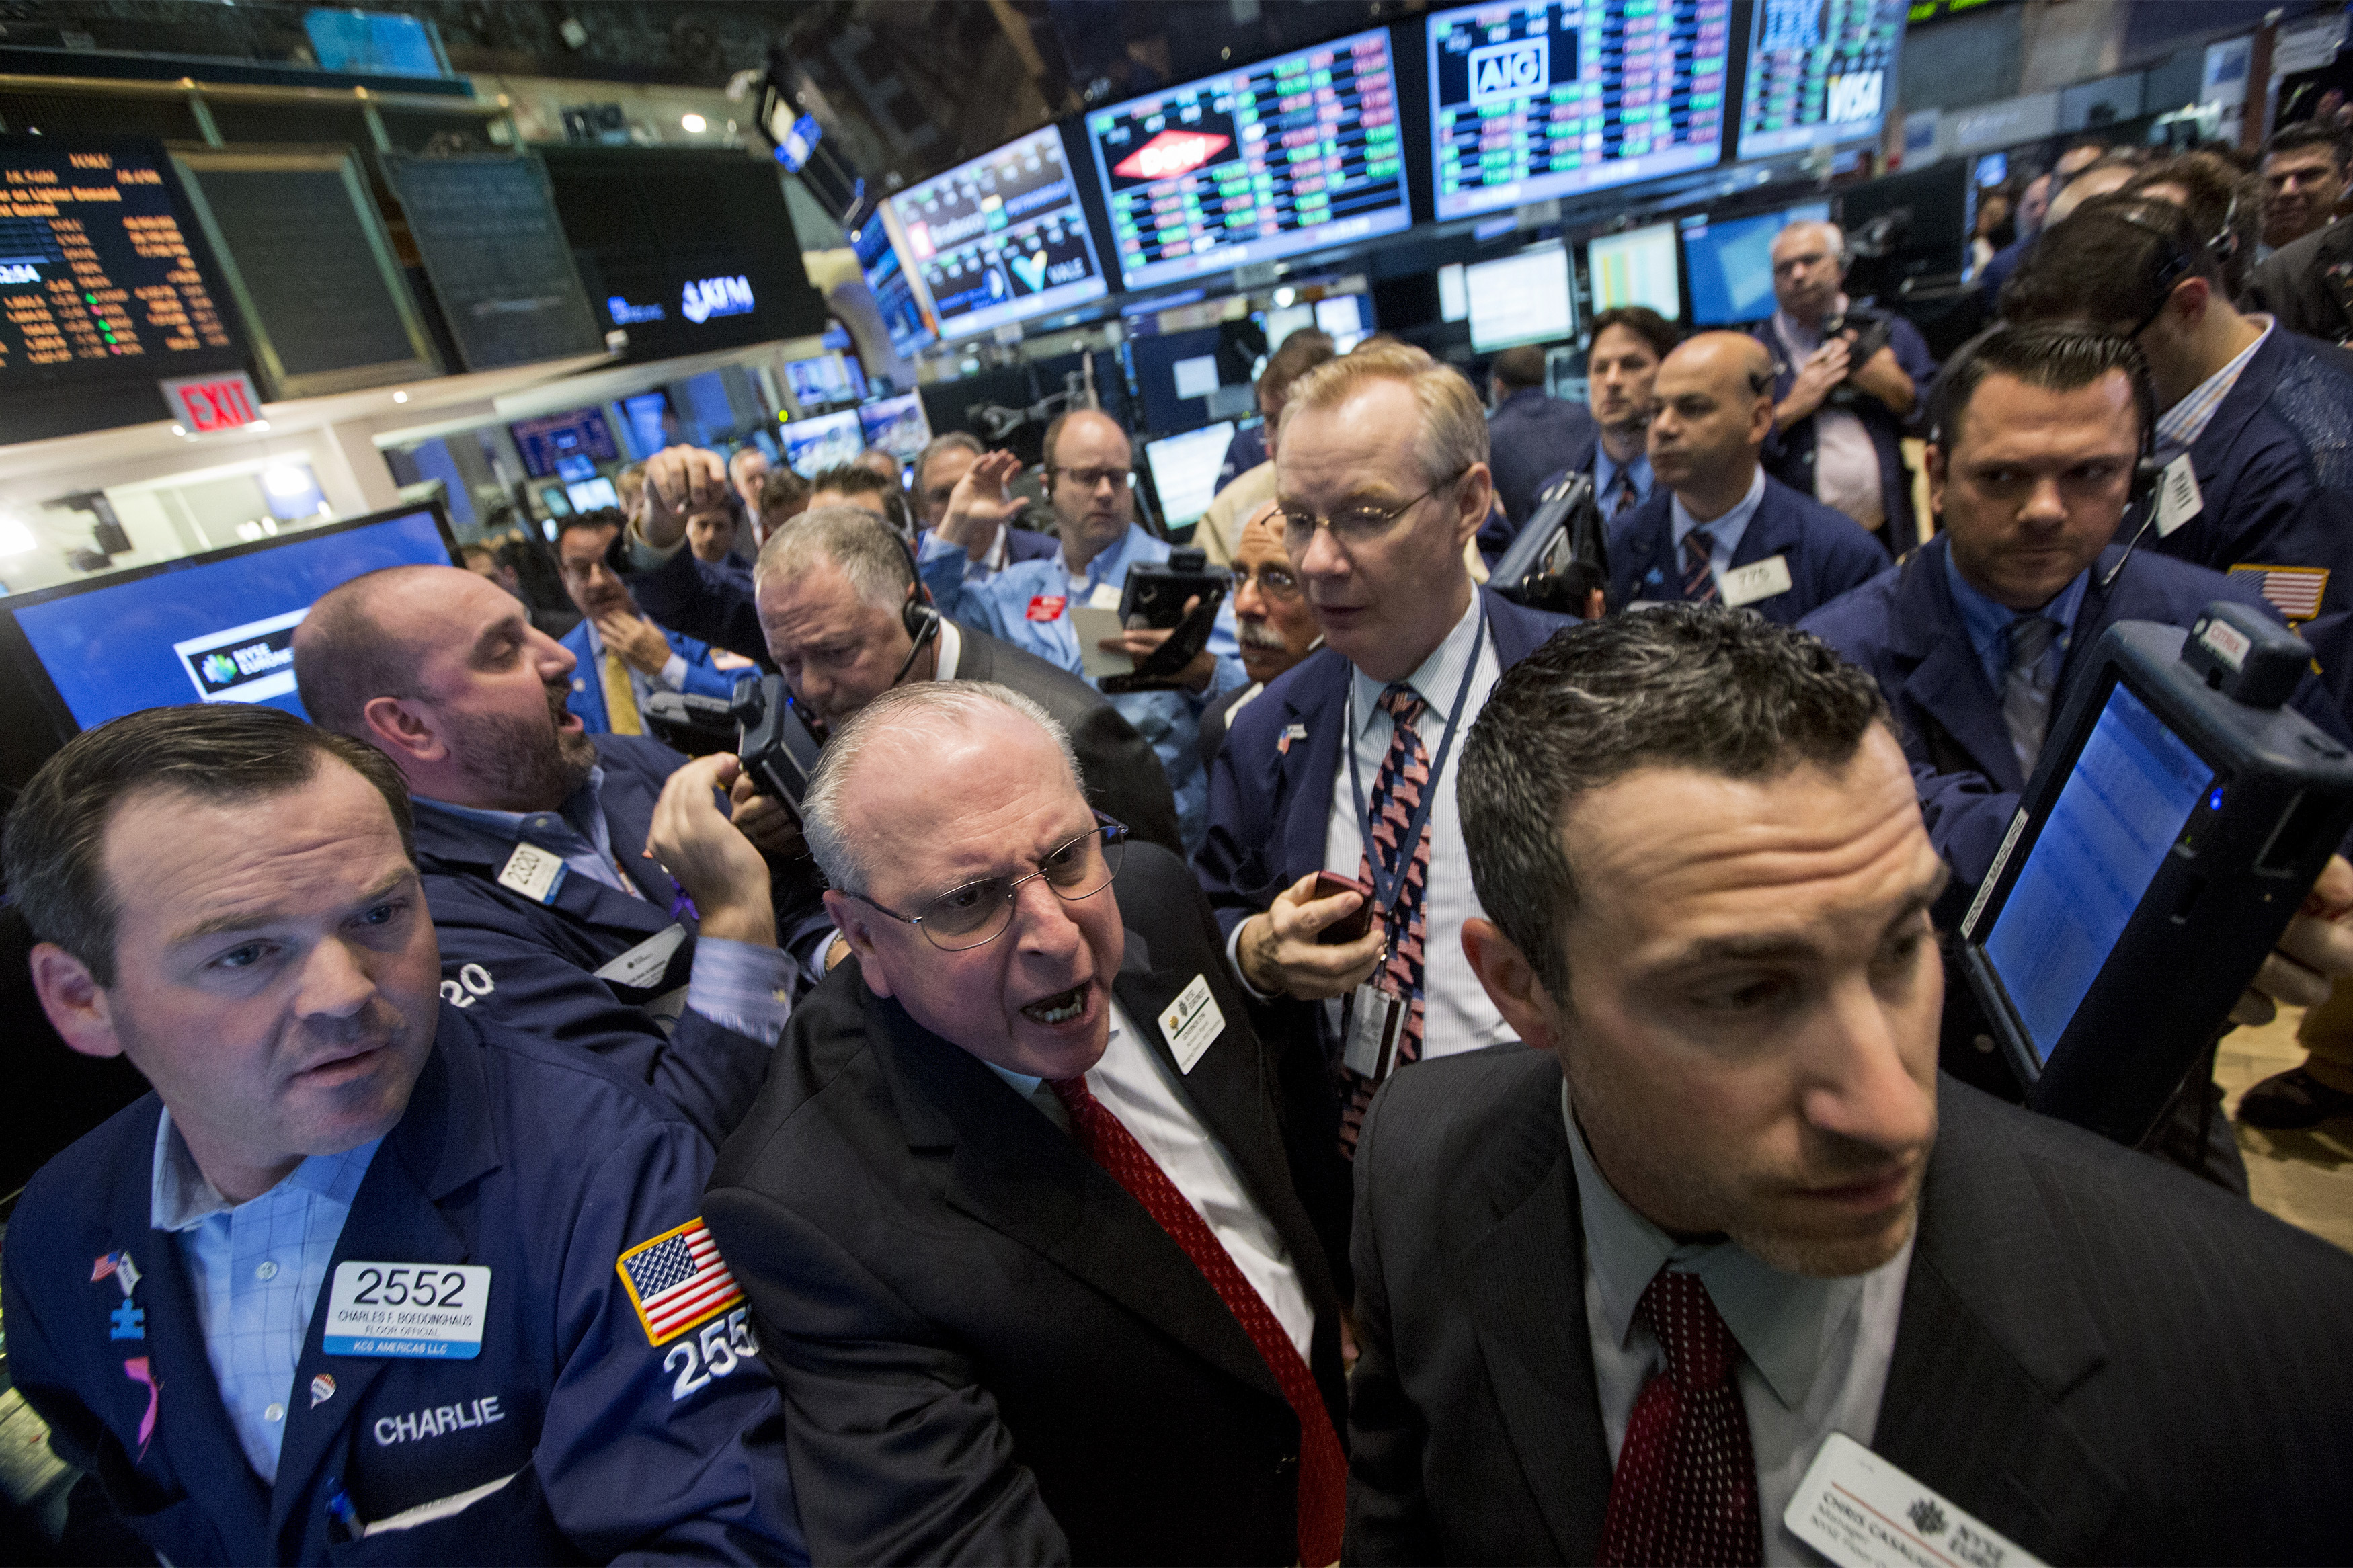 Traders work during the IPO of Parsley Energy Inc on the floor of the NYSE